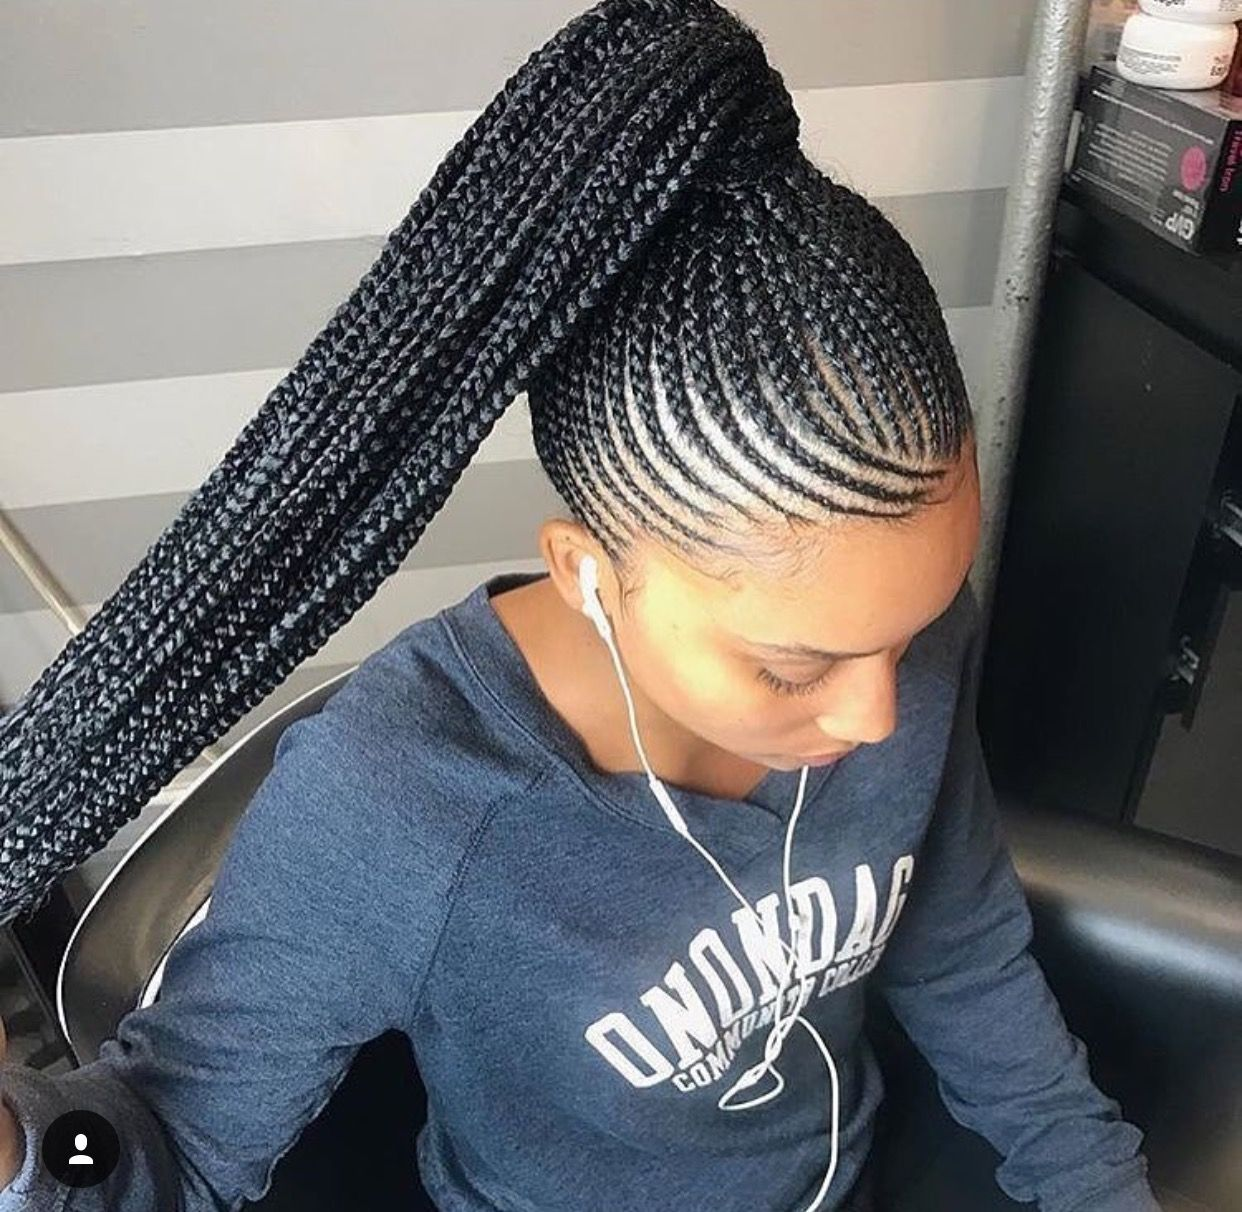 Best Hairstyle For Men With Thick Wavy Hair Feed In Braids Ponytail African Braids Hairstyles Braided Ponytail Hairstyles